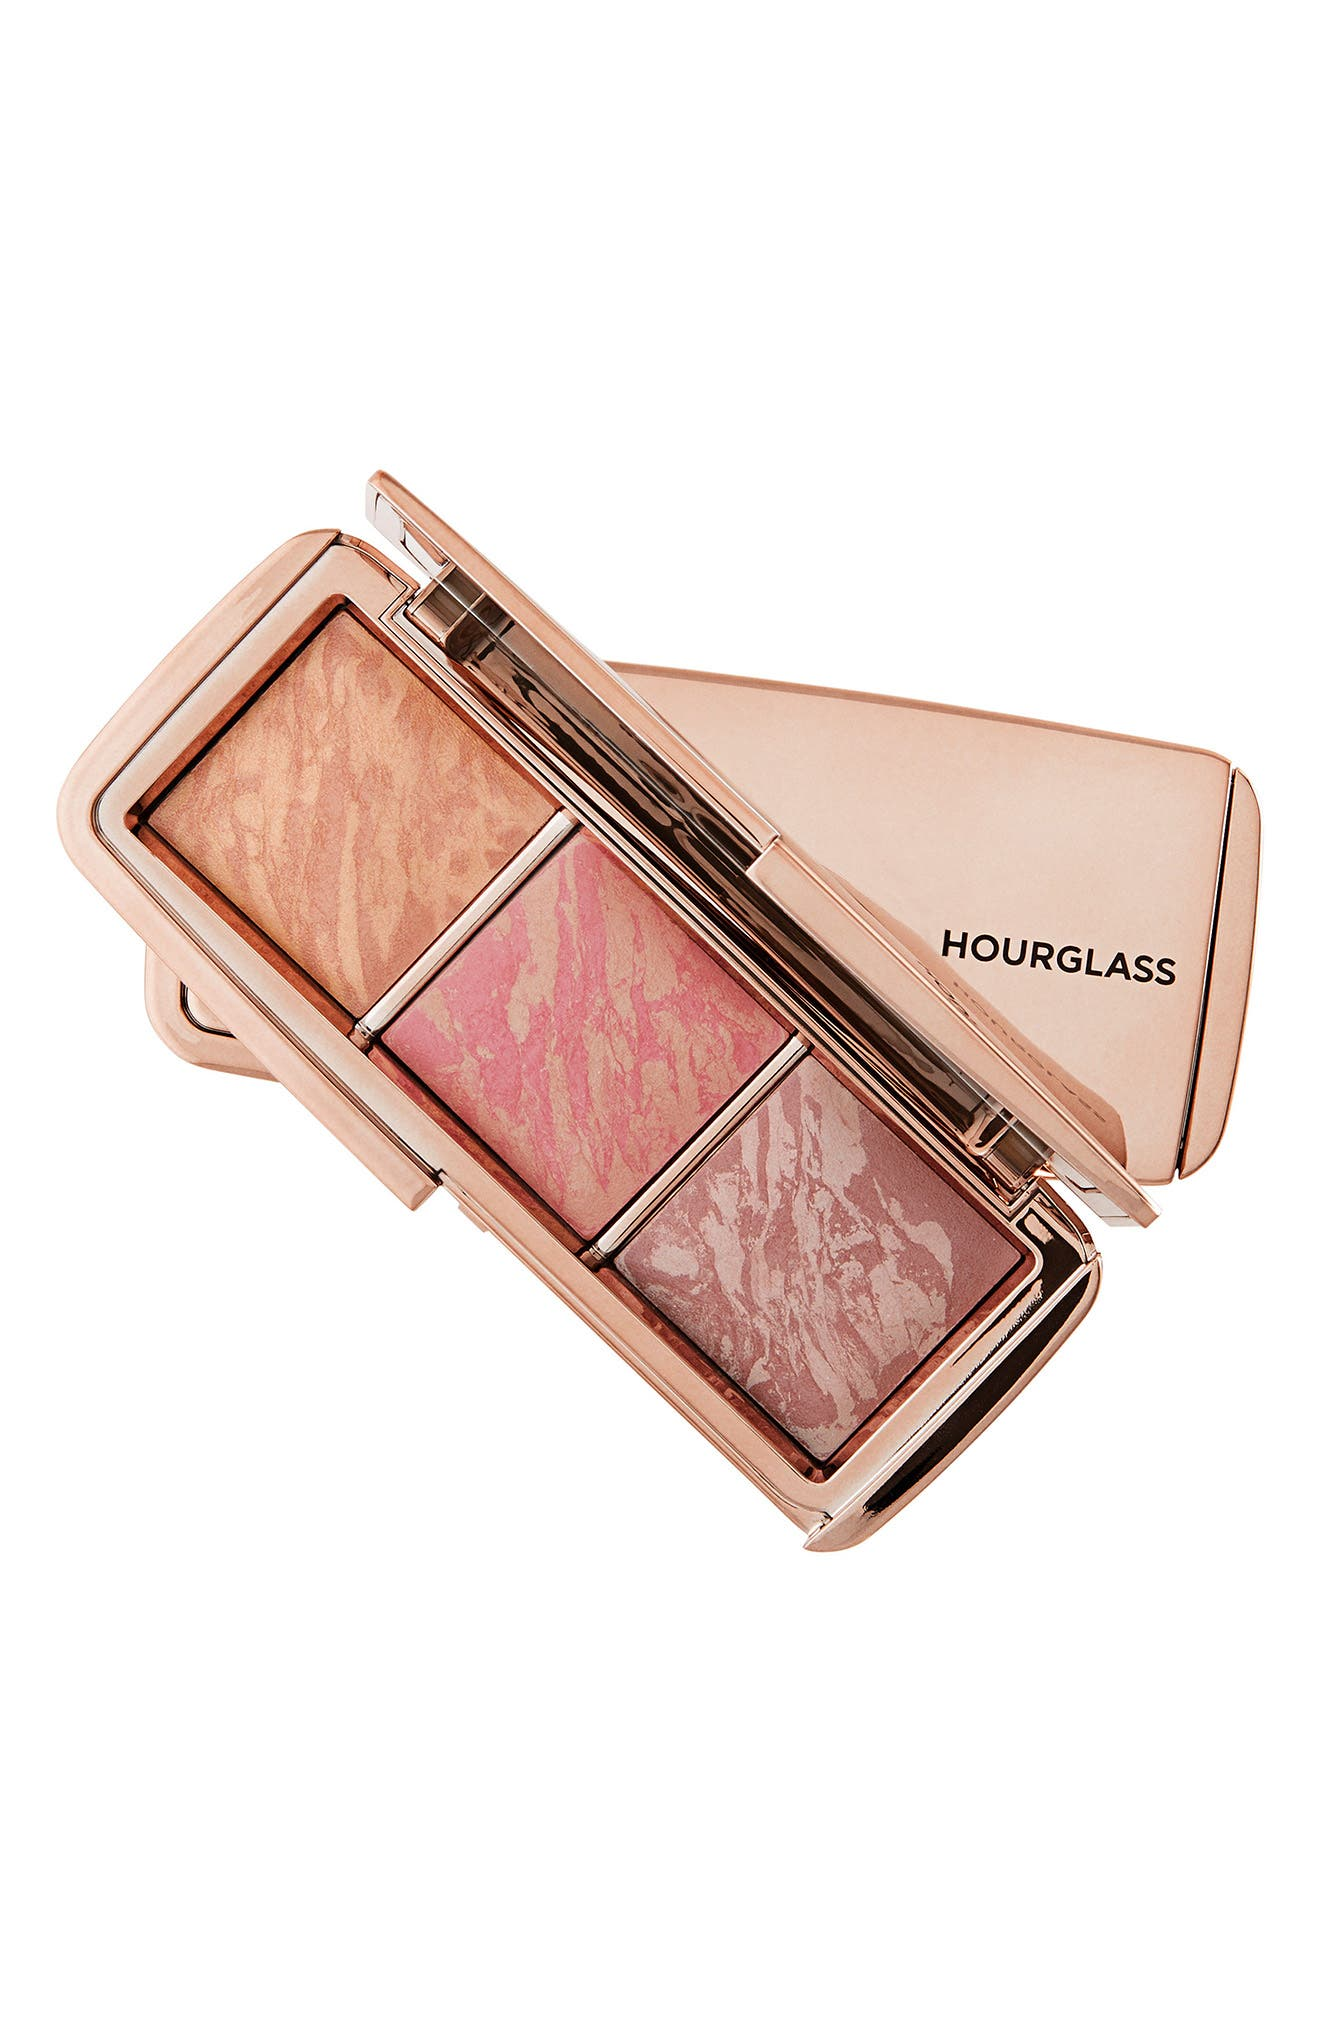 HOURGLASS, Ambient<sup>®</sup> Lighting Blush Palette, Alternate thumbnail 2, color, 000